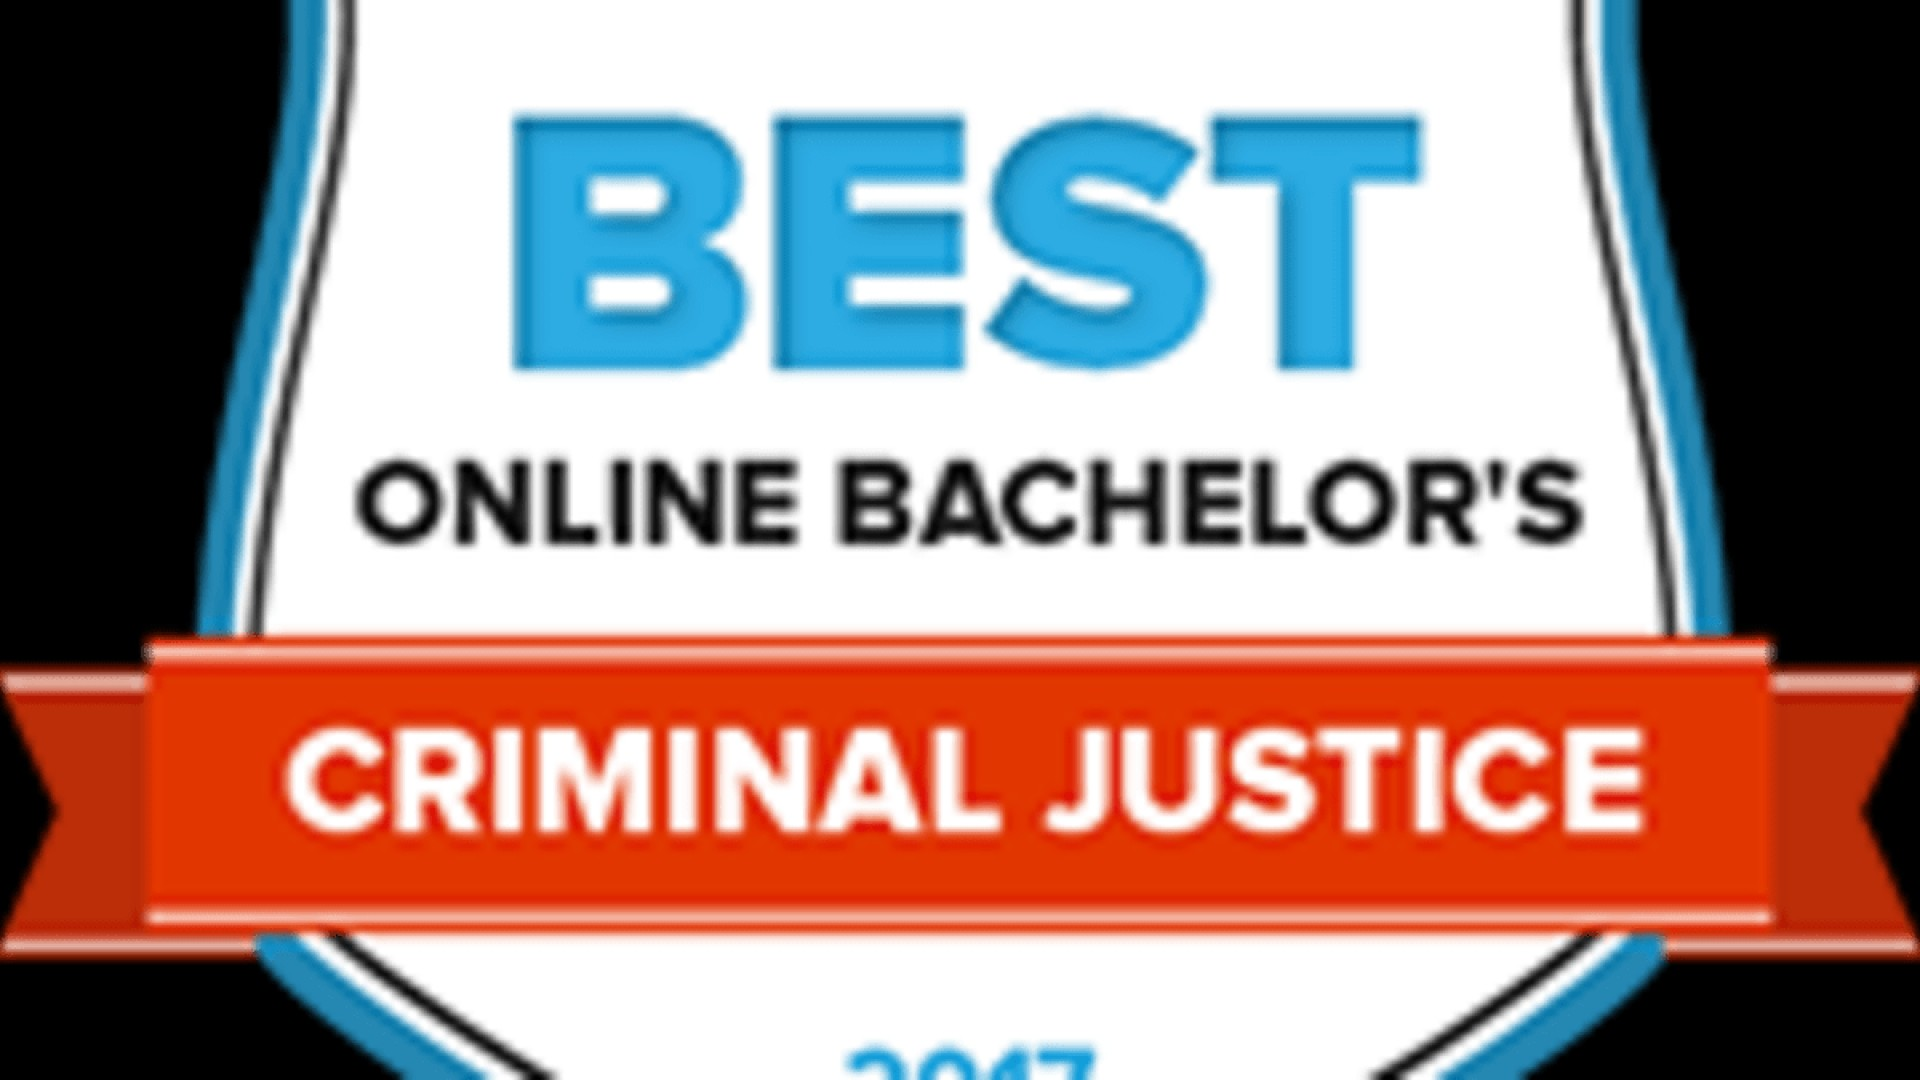 016 Best Online Bachelors Criminal Justice Research Paper Fearsome 100 Topics 1920